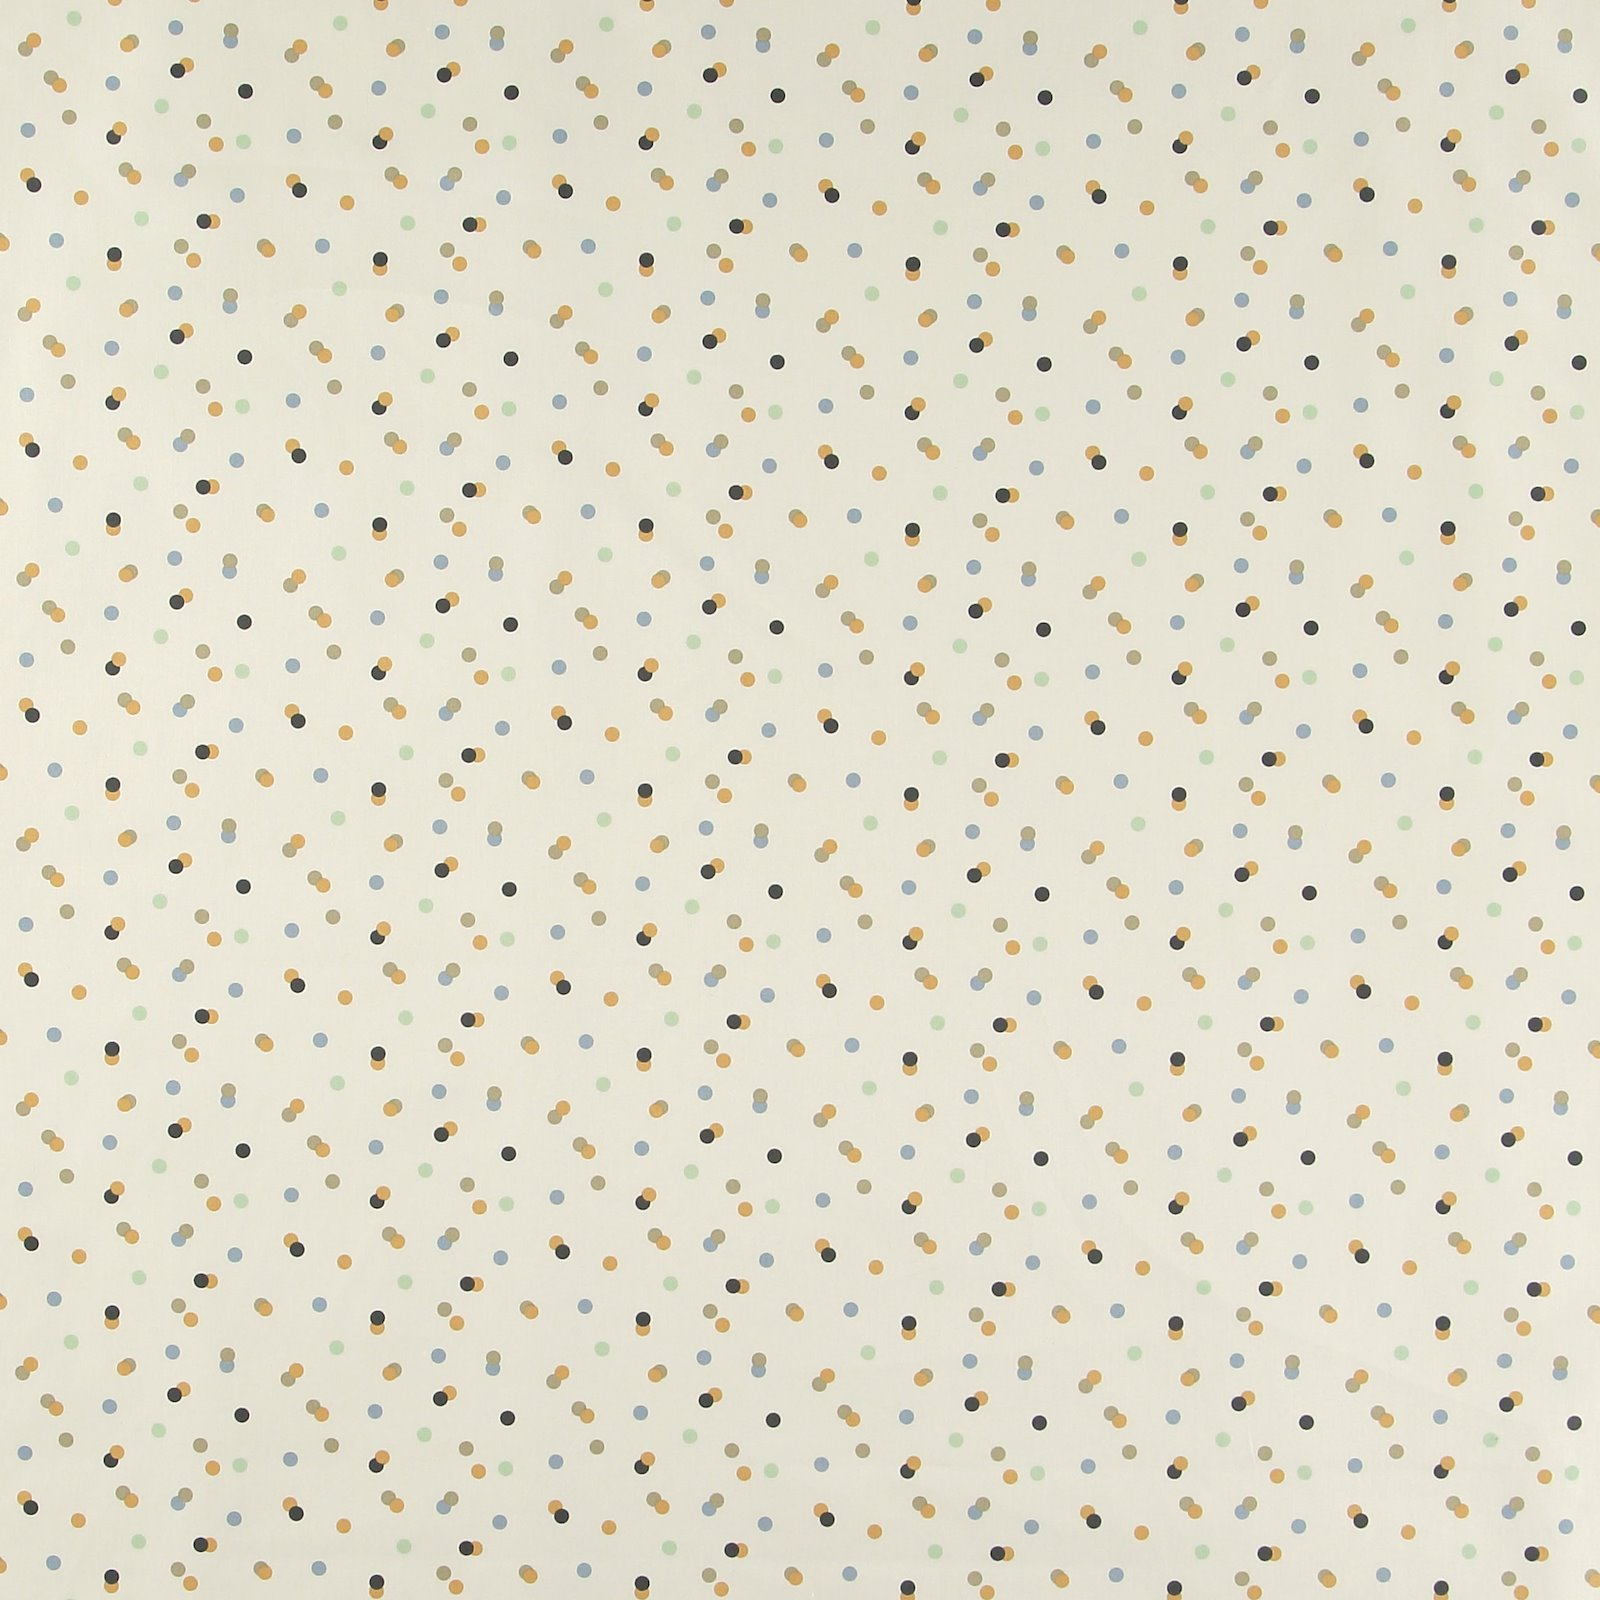 Satin light beige with dots 816261_pack_sp